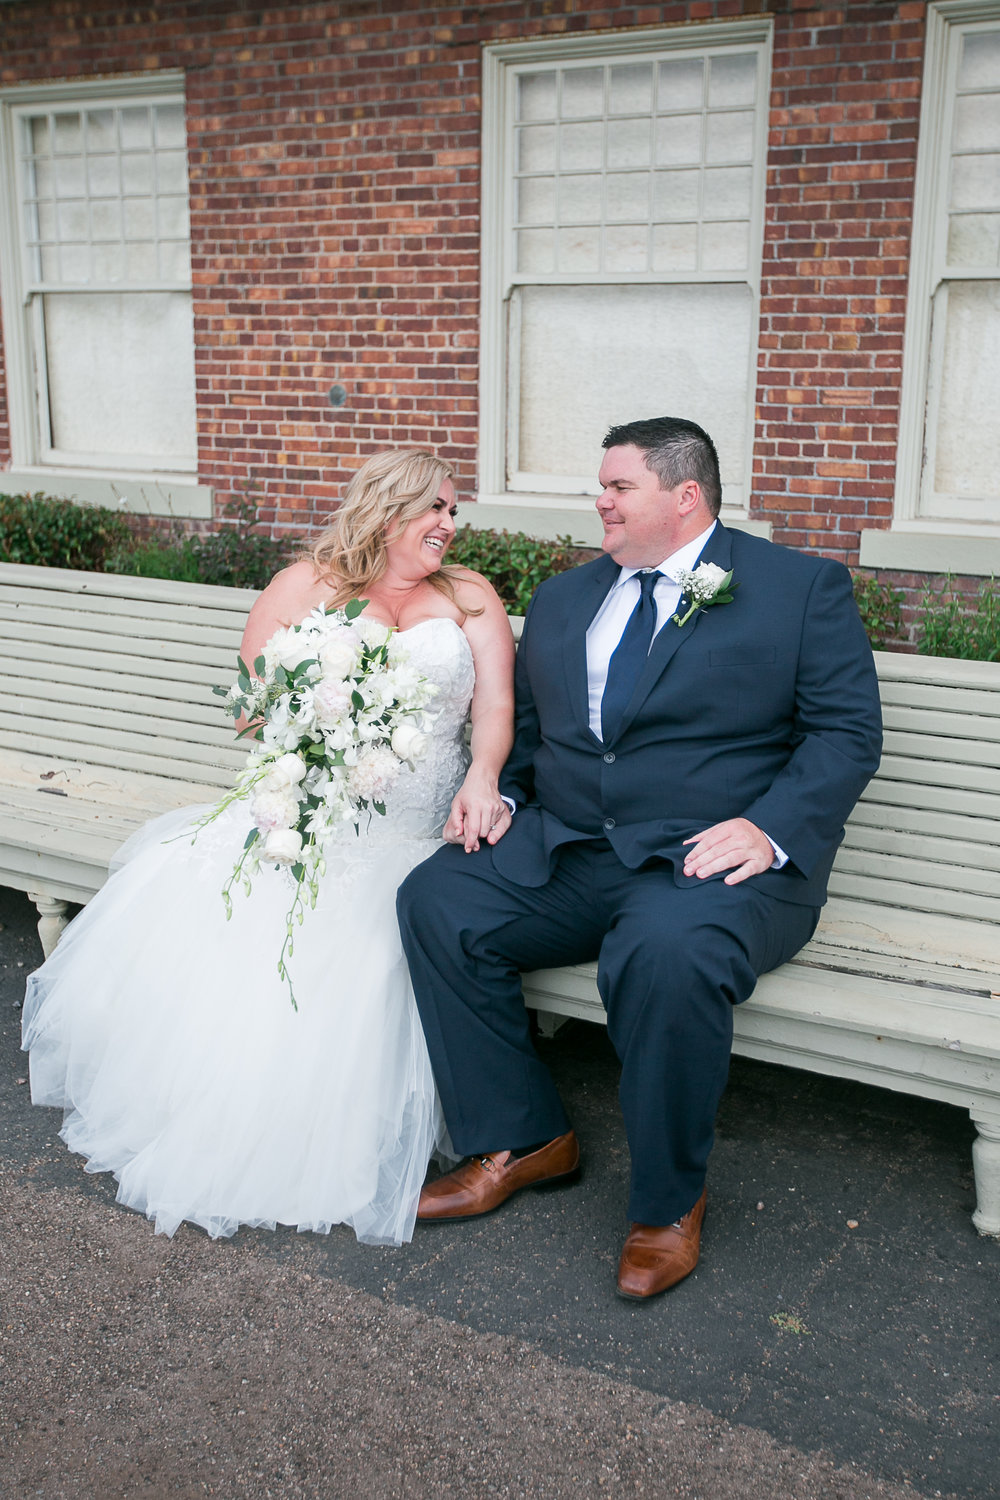 Jen_&_Mike_Del_Mar_Powerhouse_Wedding_2017 (13 of 45).jpg